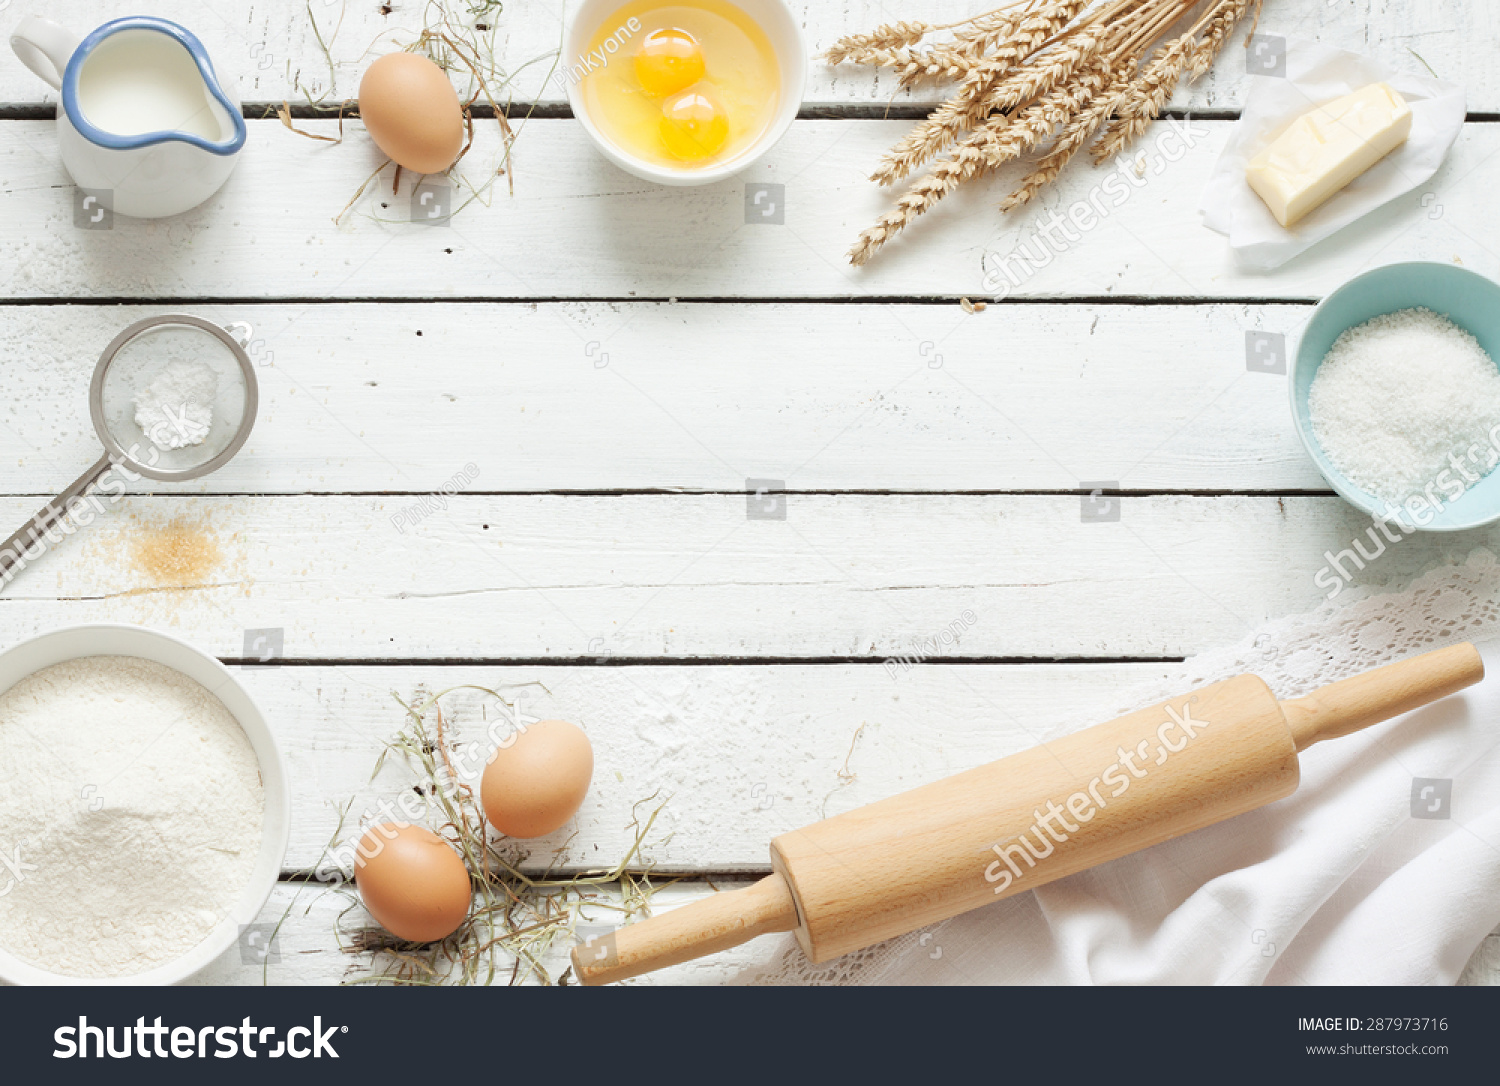 Baking cake in rustic kitchen - dough recipe ingredients (eggs, flour, milk, butter, sugar) on white planked wooden table from above. Background layout with free text space. #287973716